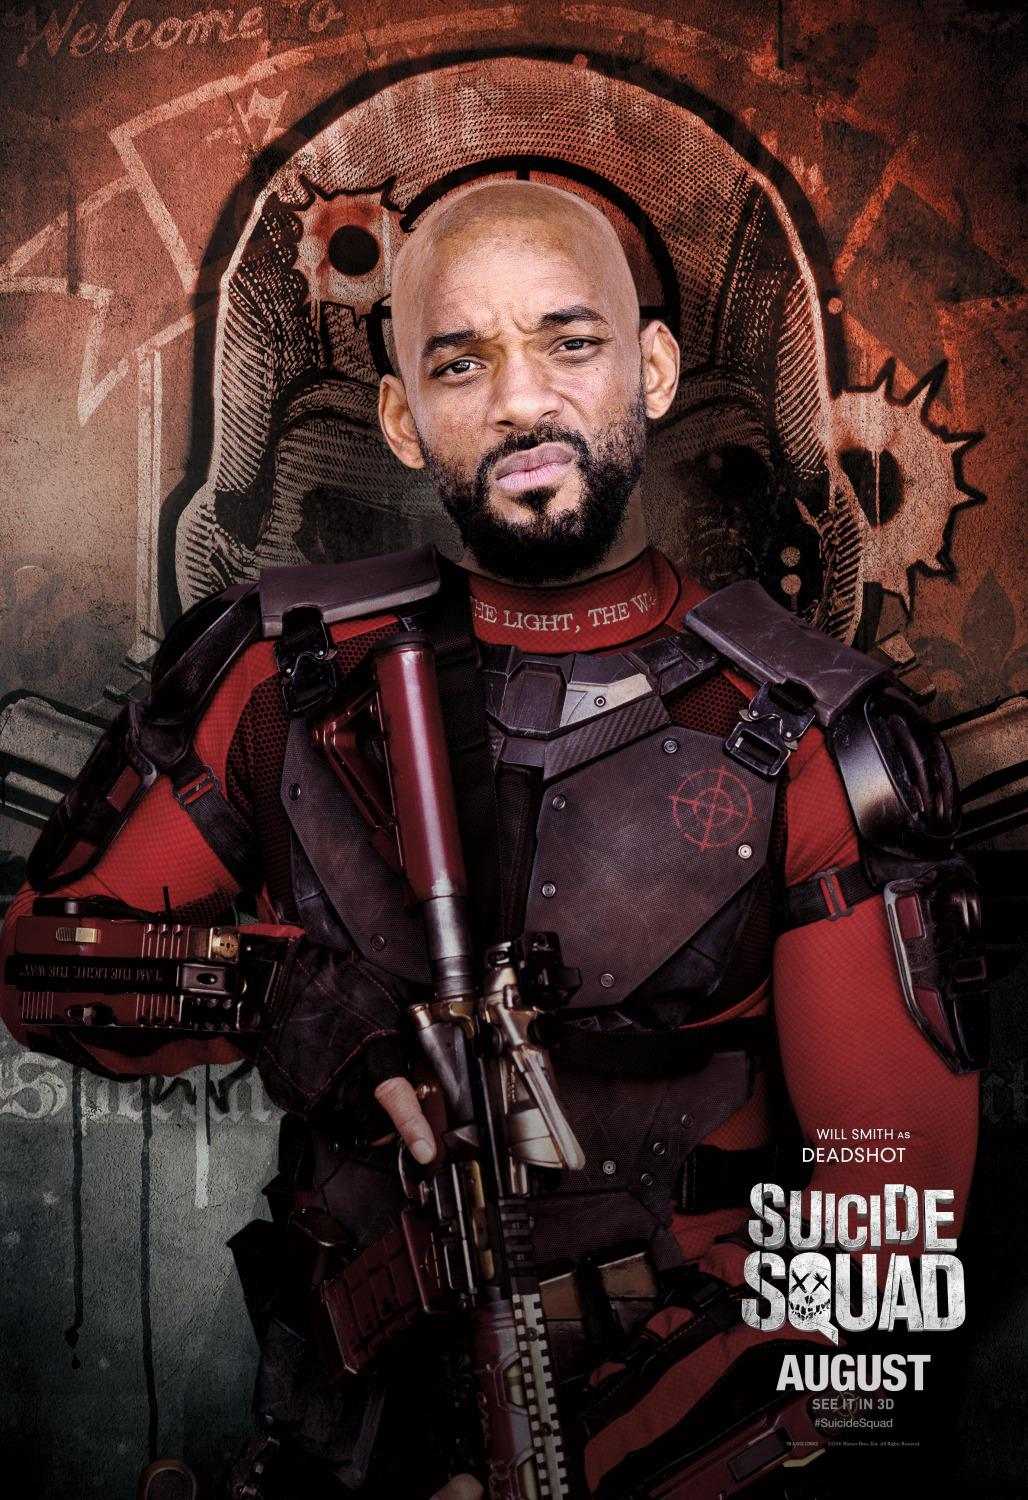 Suicide Squad - Will Smith - Deadshot